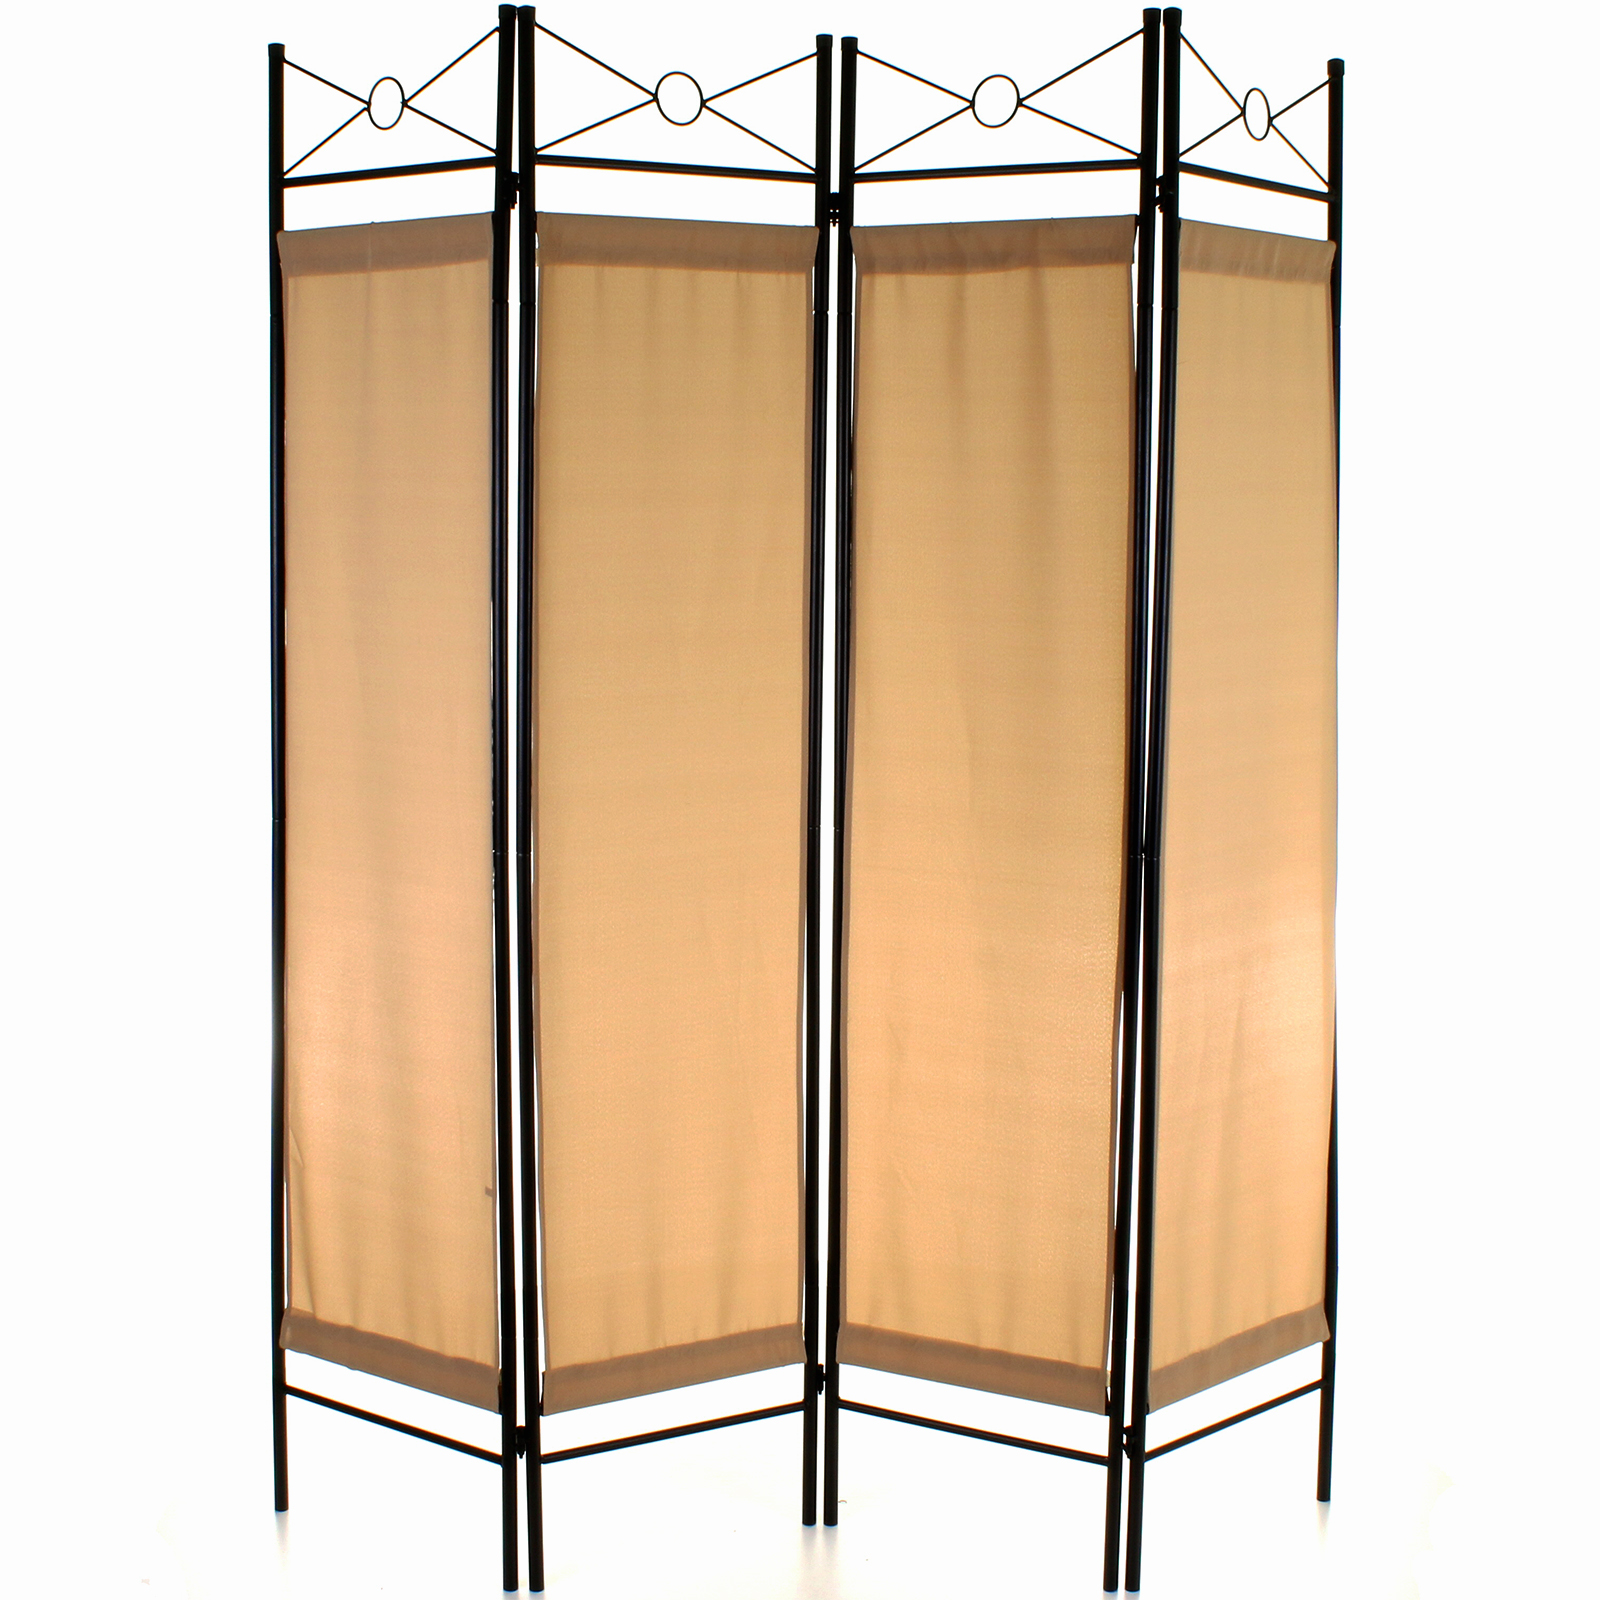 details about folding room divider 4 panel screen privacy wall movable